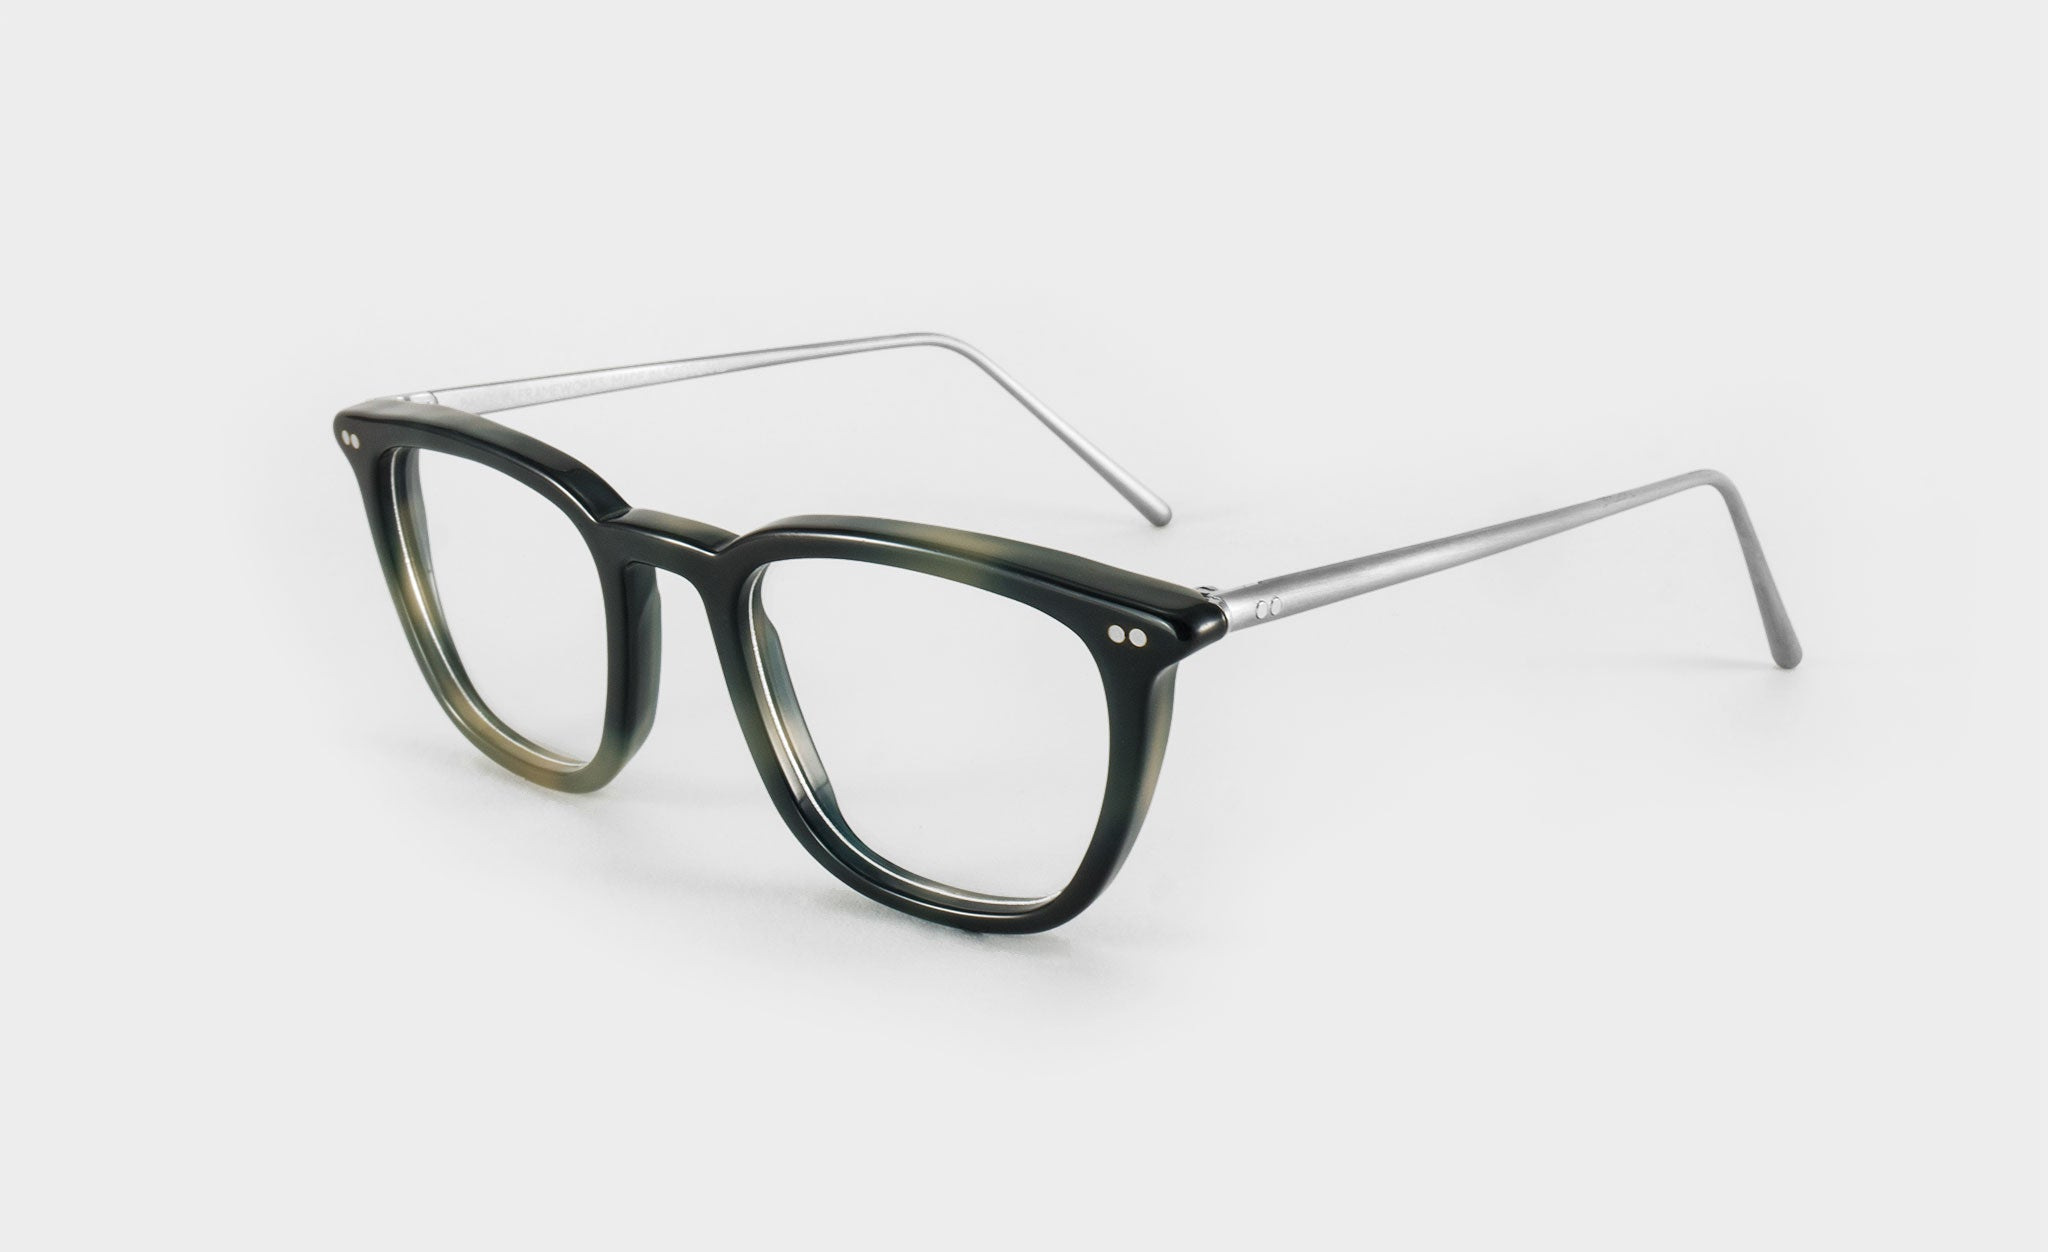 mens-glasses-b-loc-side-view